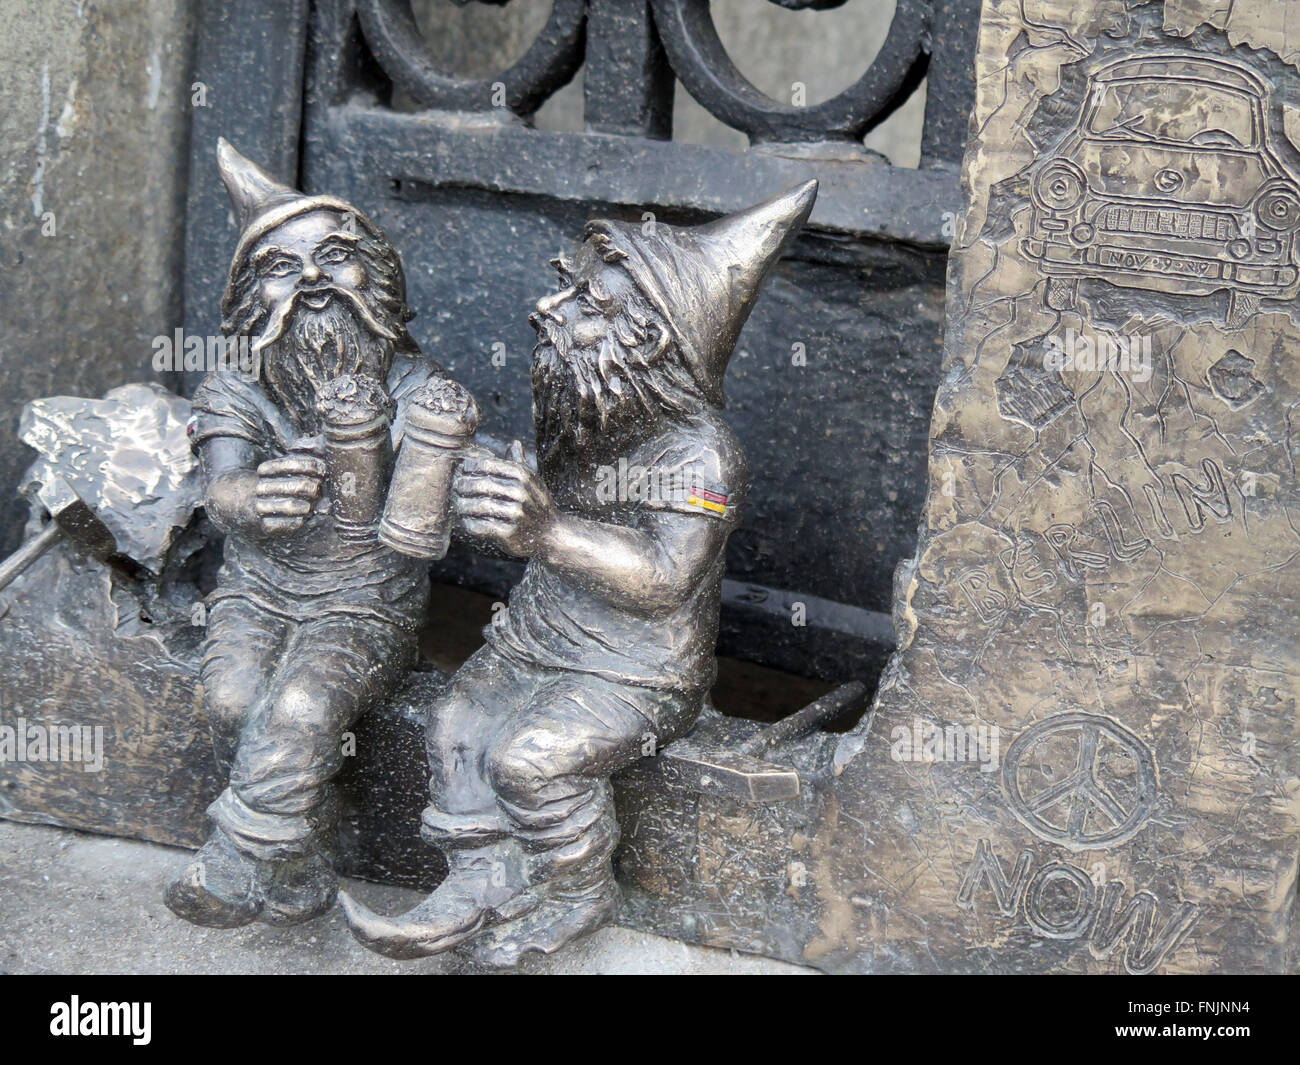 A pair of dwarves pictured in front of the consulate general in Wroclaw, Poland, photographed in January 2016. Once - Stock Image